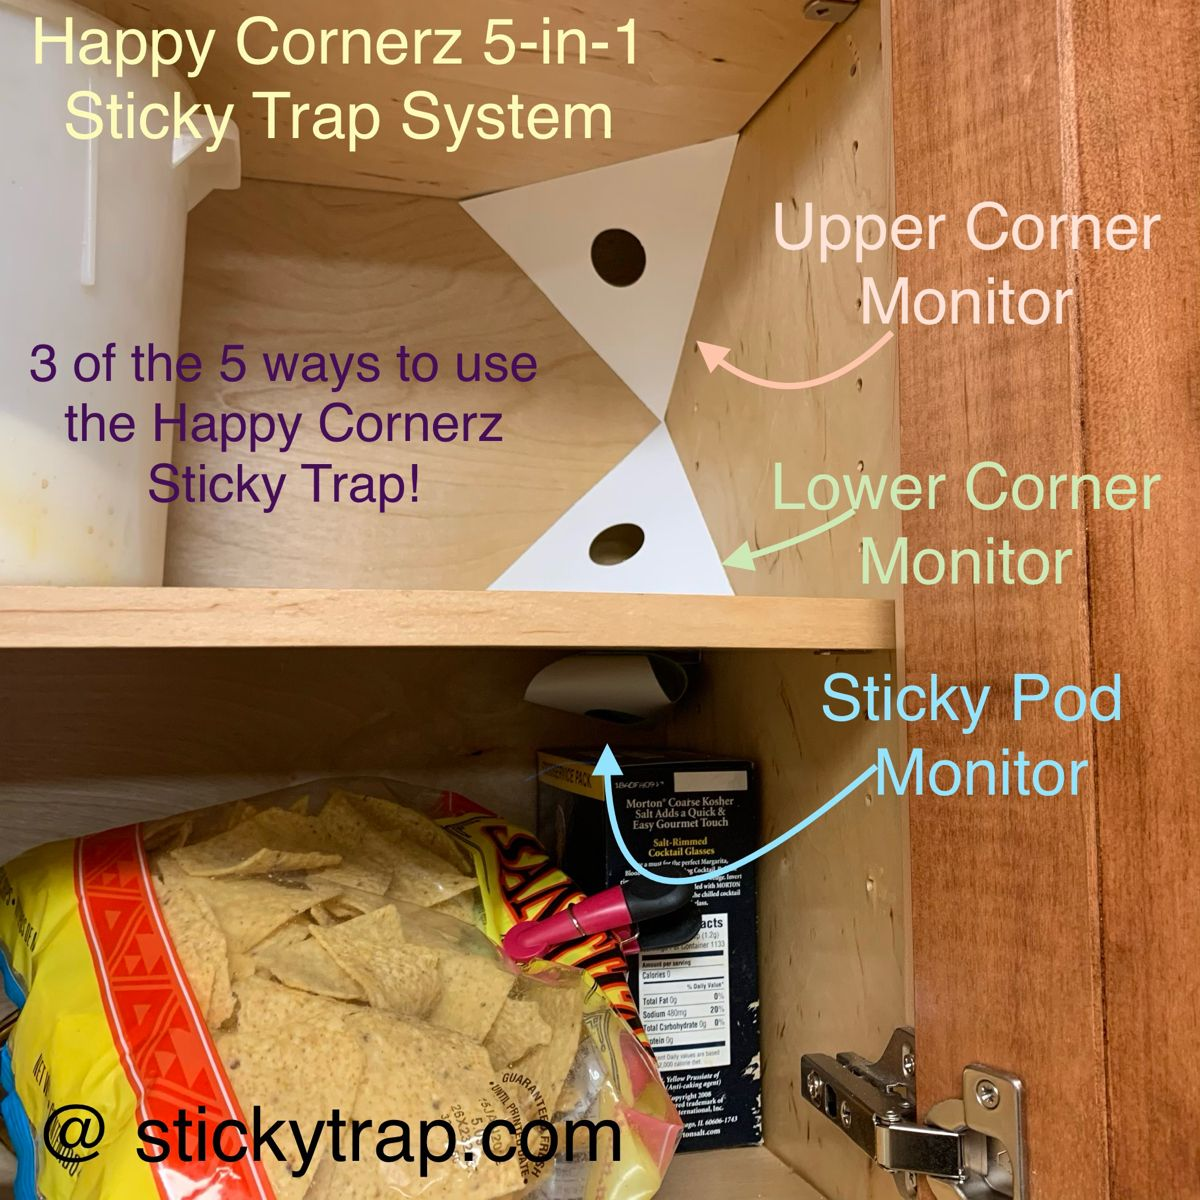 At Happy Cornerz, we take pride that 1 of our Glue Traps